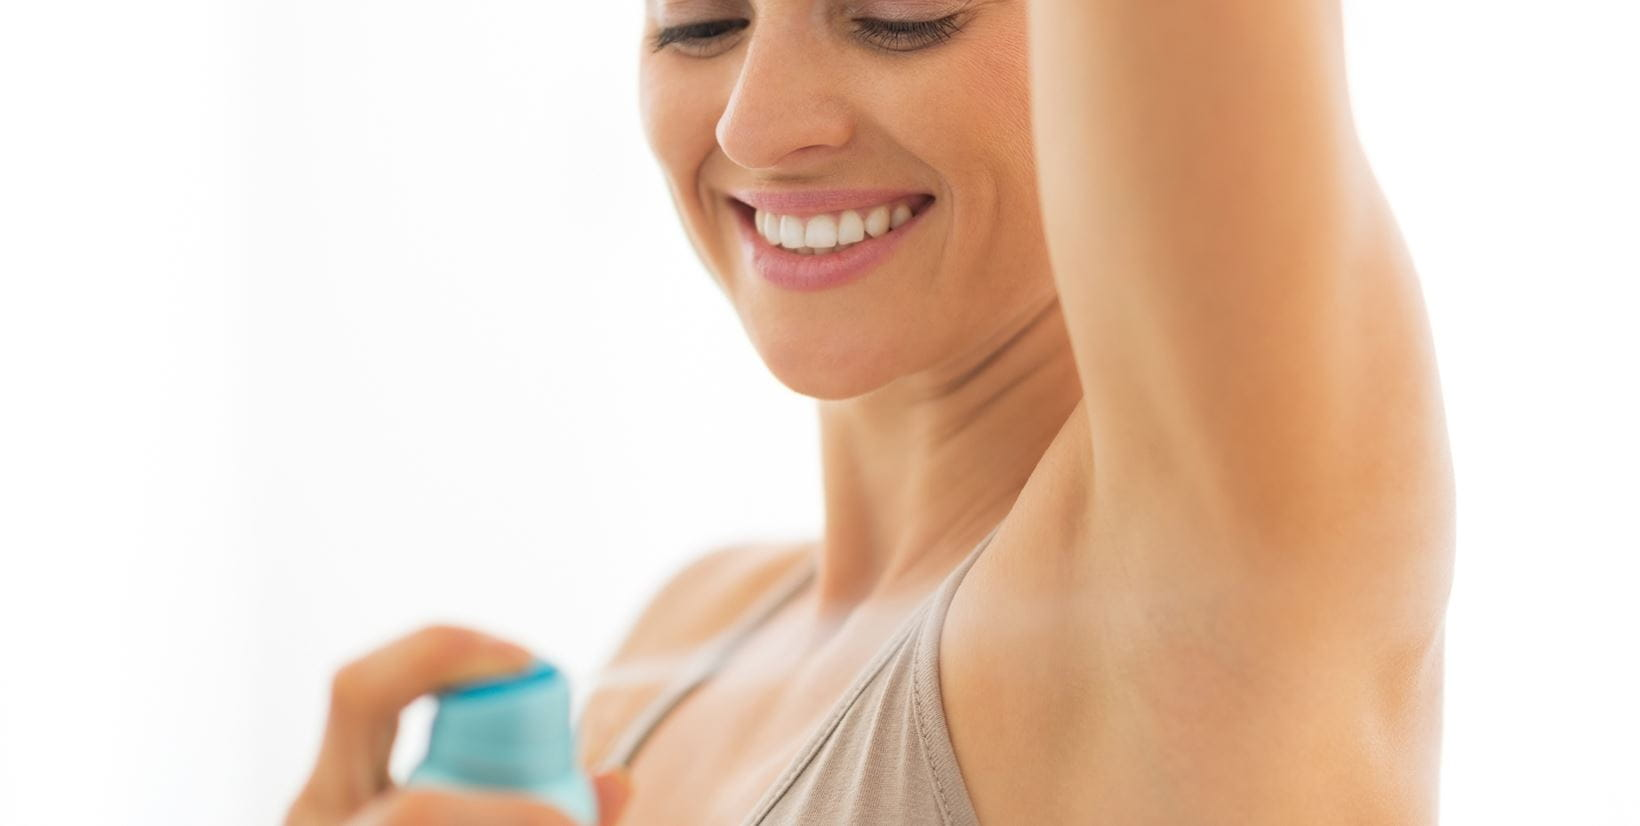 woman applying deodorant to prevent excessive sweating